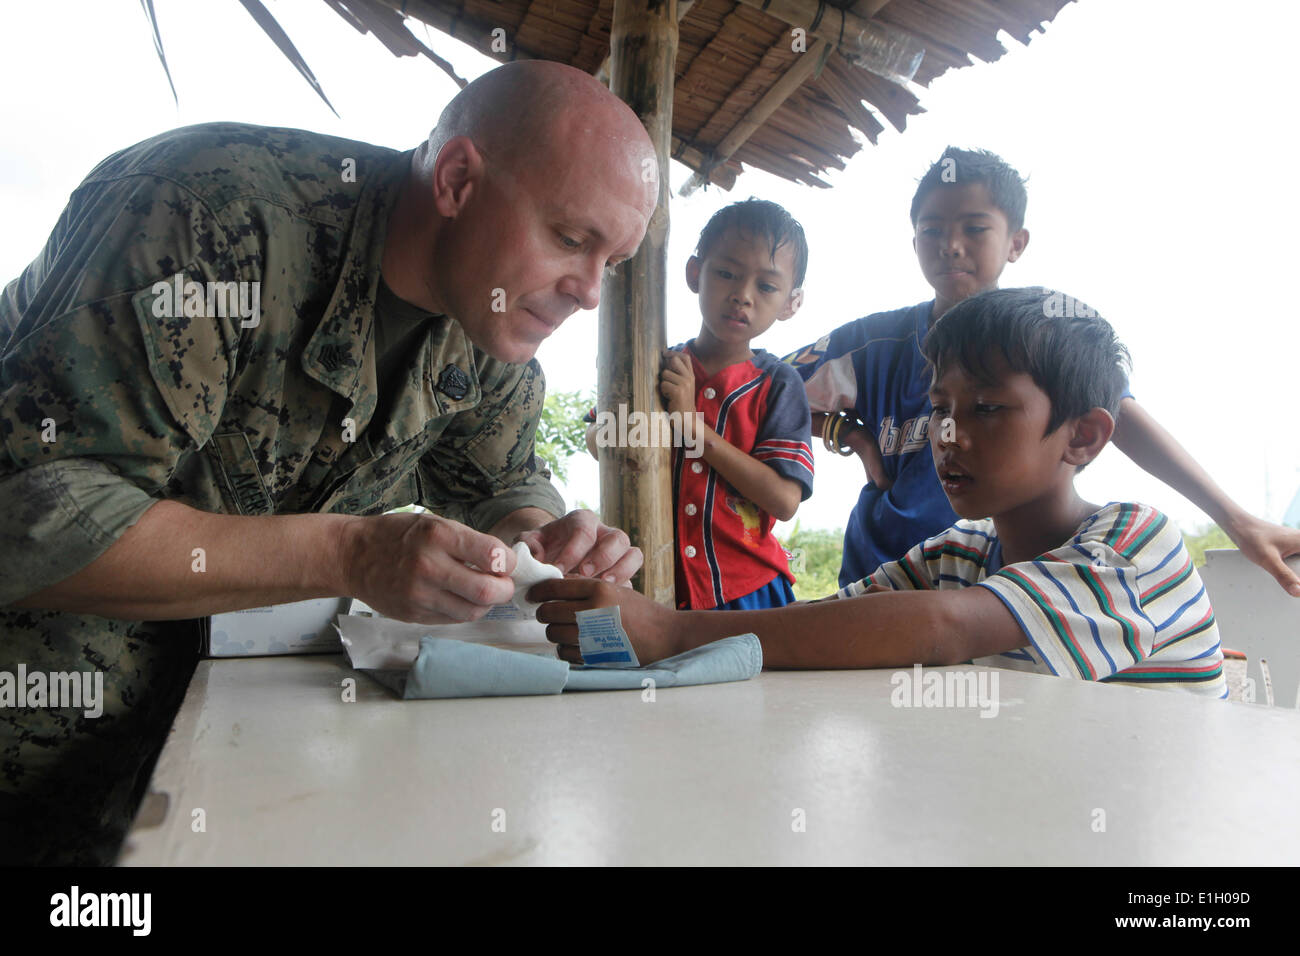 U.S. Navy Hospital Corpsman 1st Class Johnathan Akers, left, performs a medical procedure on a Filipino boy?s hand Oct. 9, 2011 - Stock Image